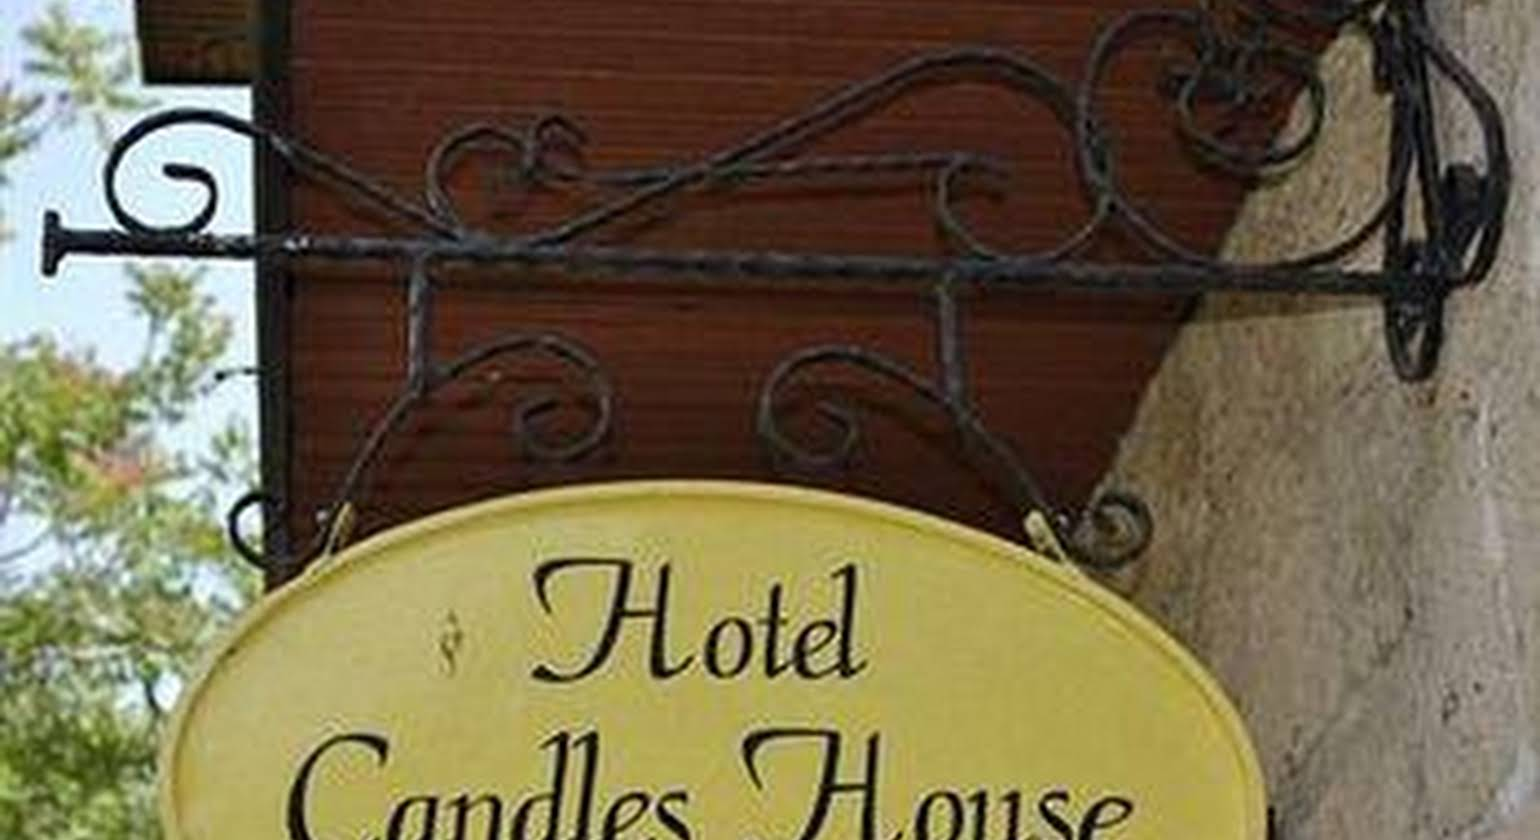 Candles House